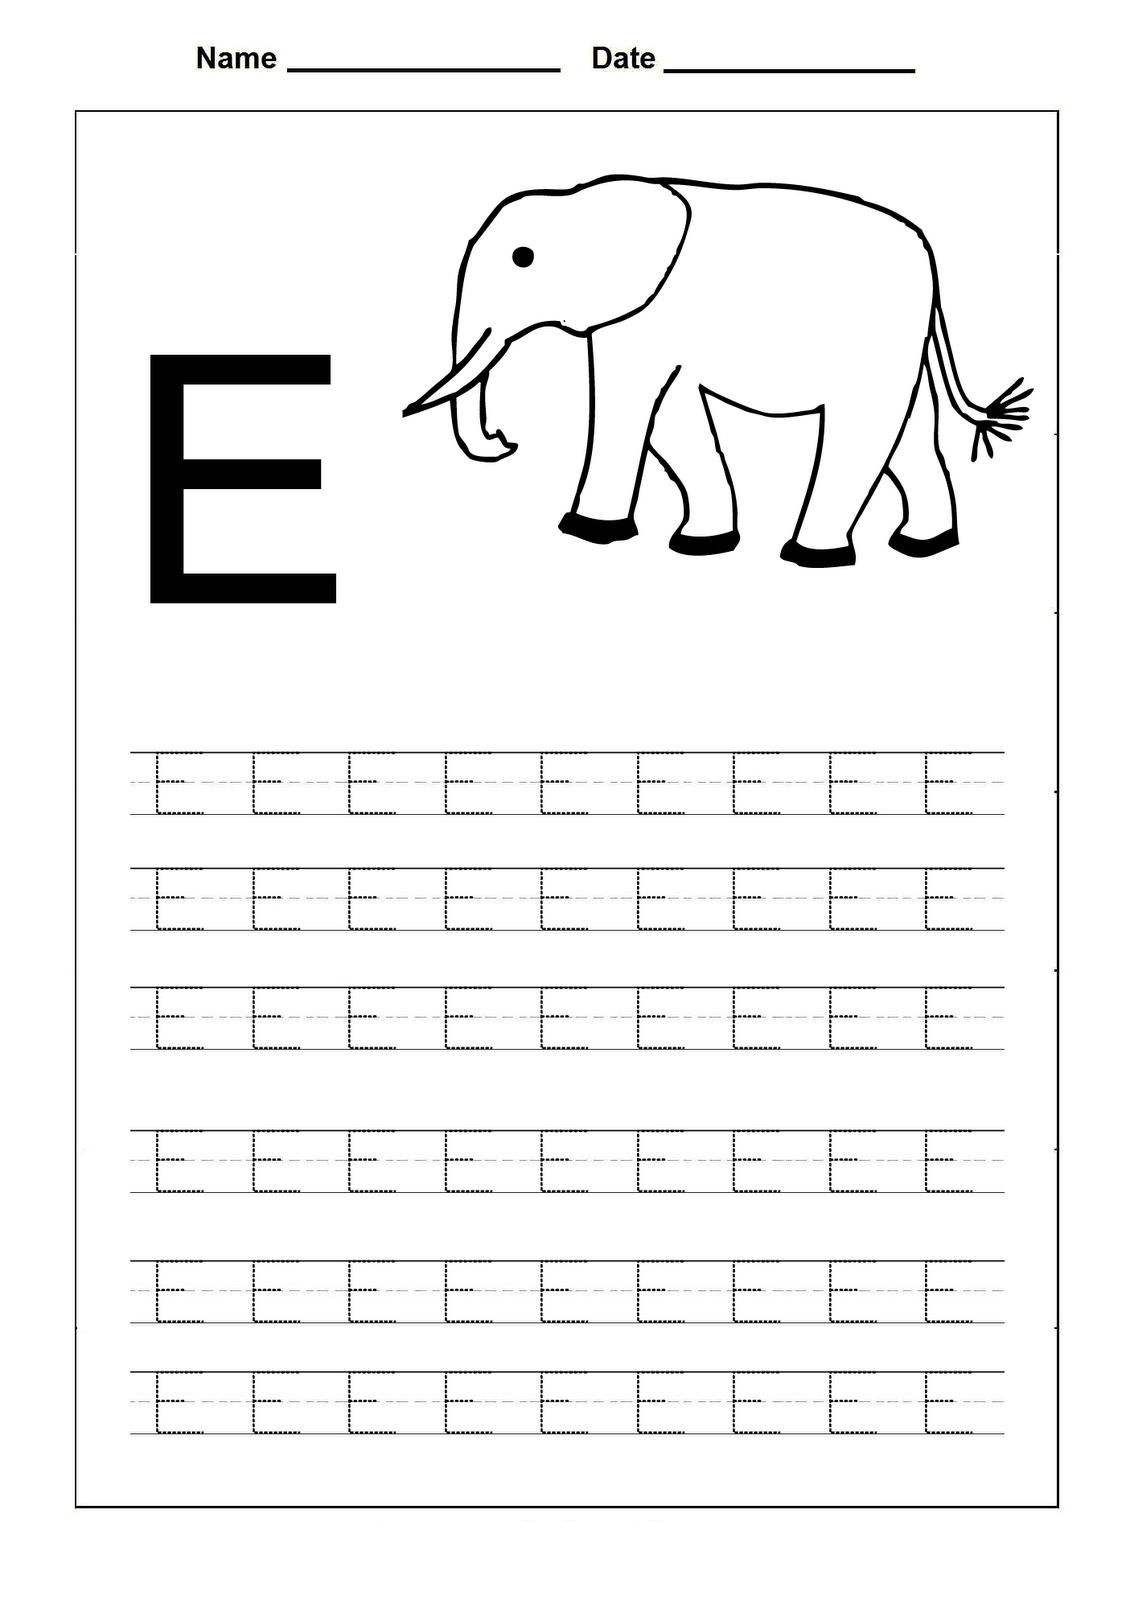 Letter E Worksheets For Preschoolers Preschooler Development – E Worksheets for Kindergarten